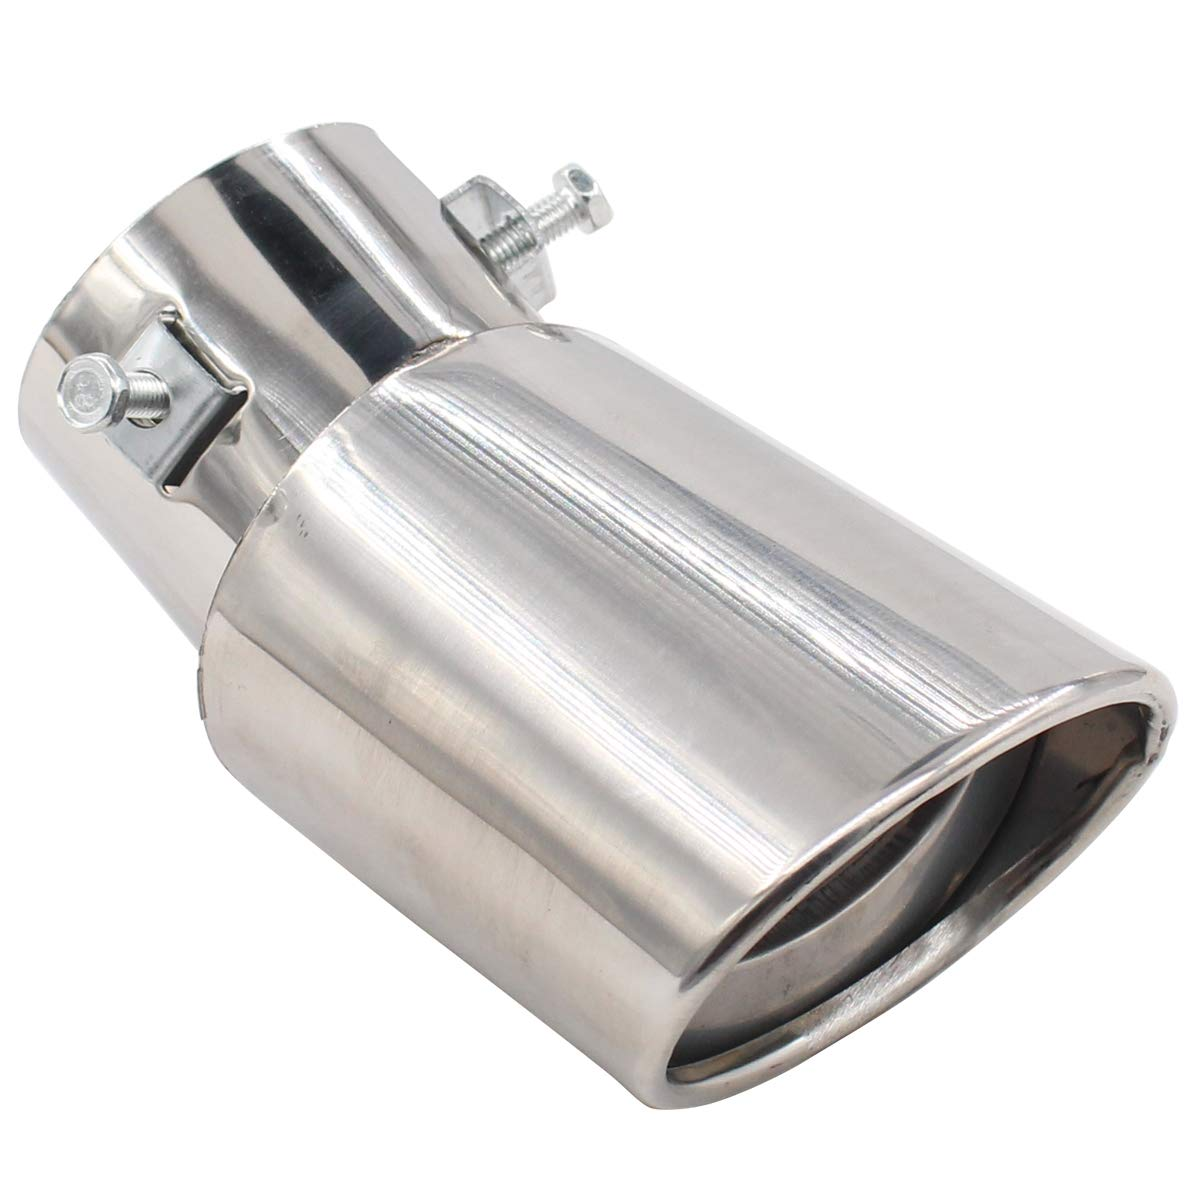 NewYall Exhaust Muffler Tail Pipe Tip Tailpipe